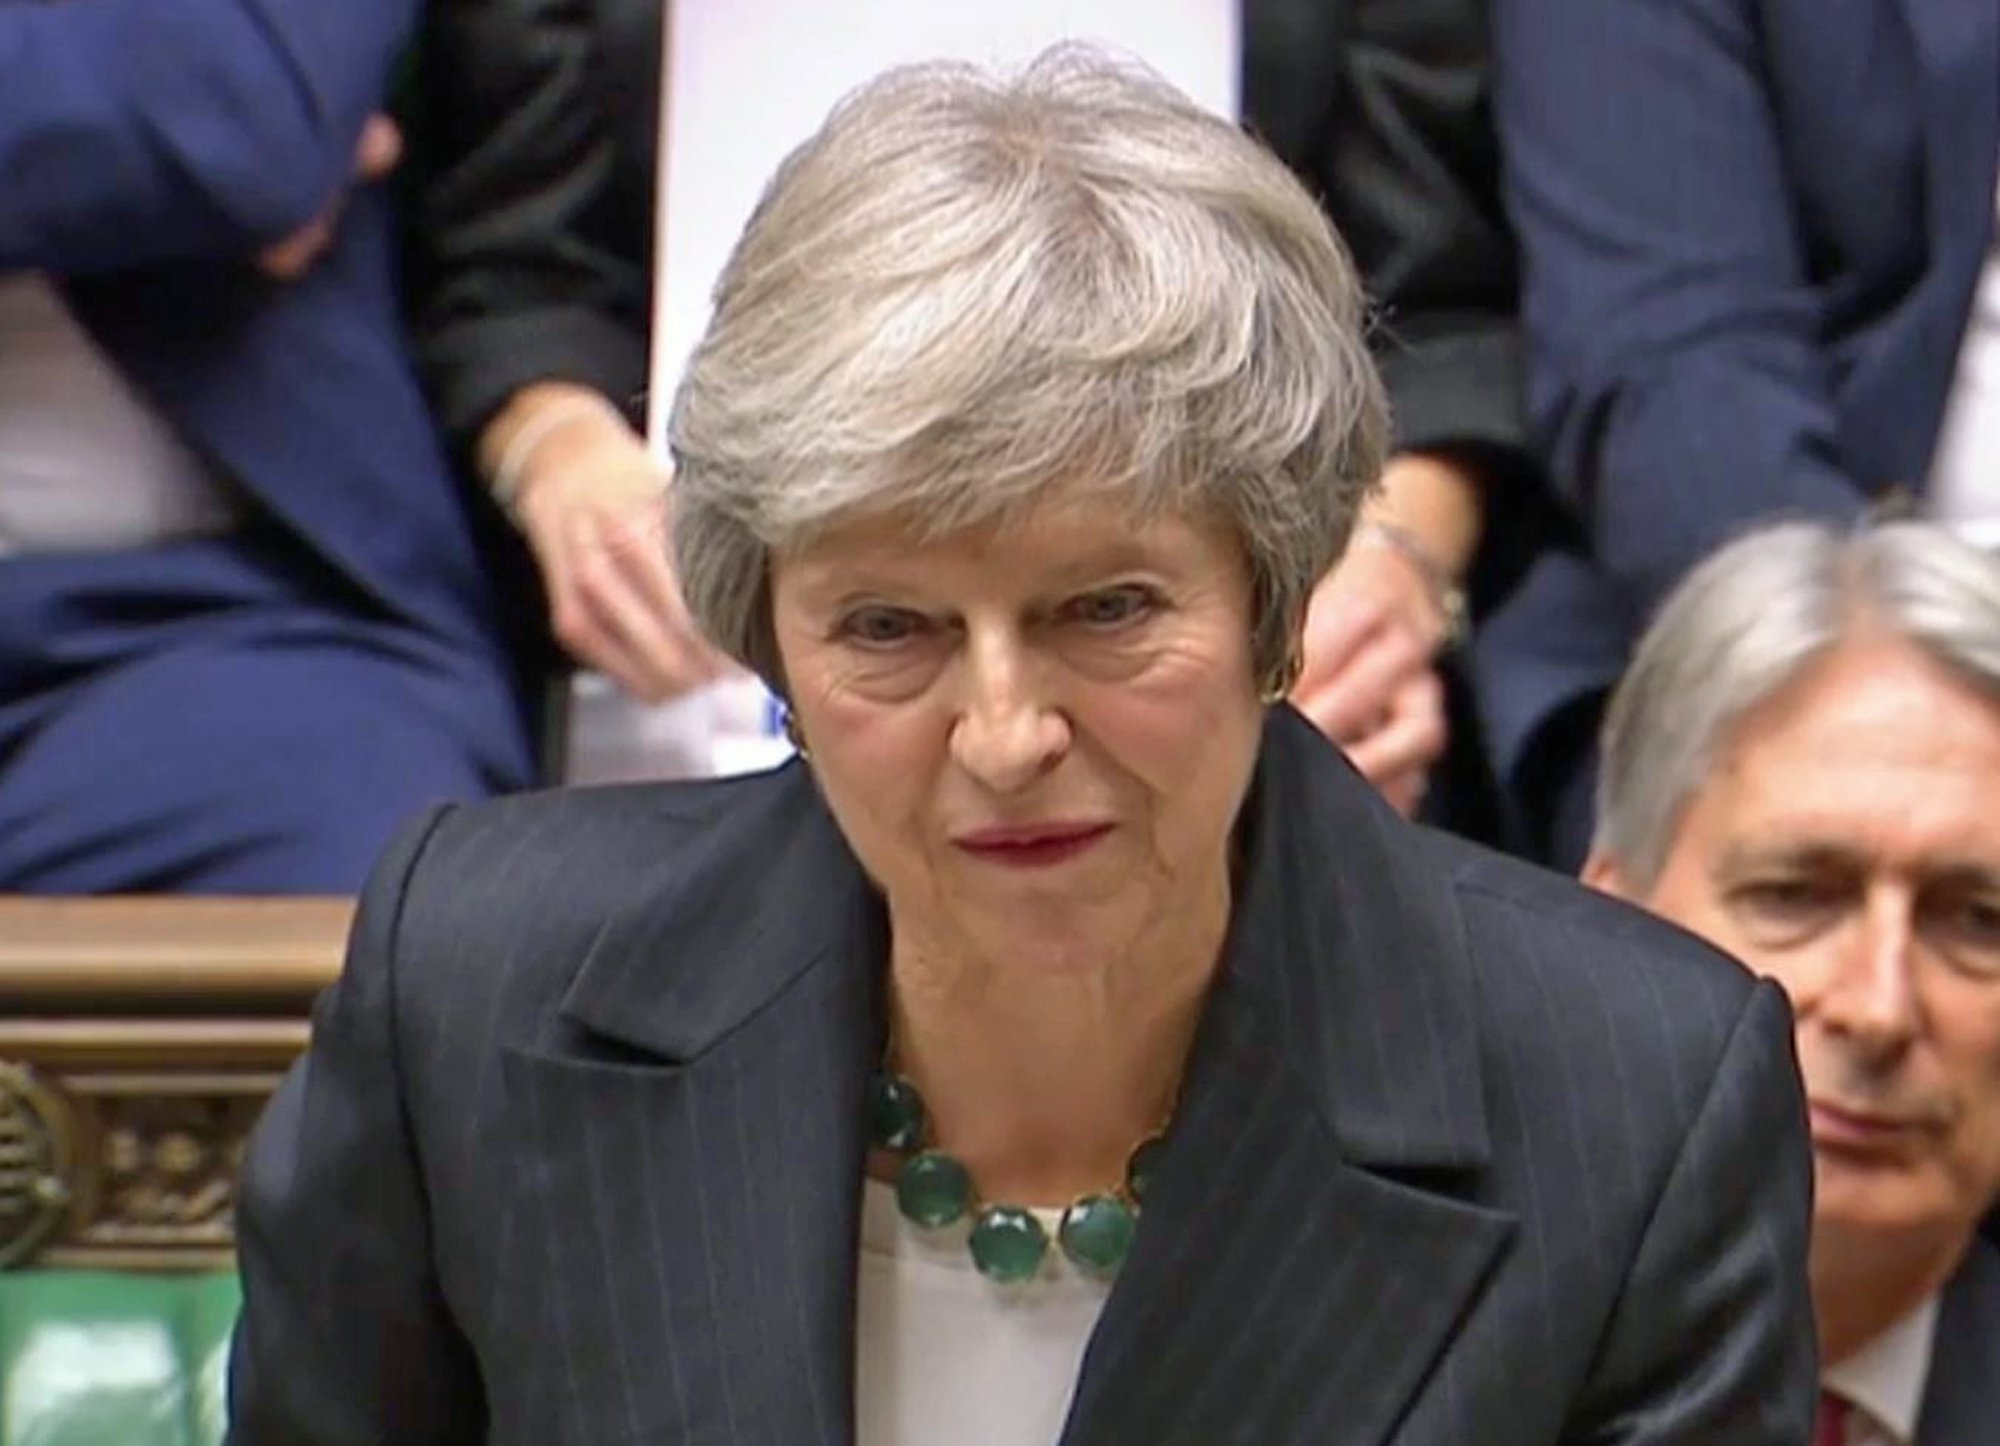 MPs cheer as Theresa May mentions scrapping Brexit completely